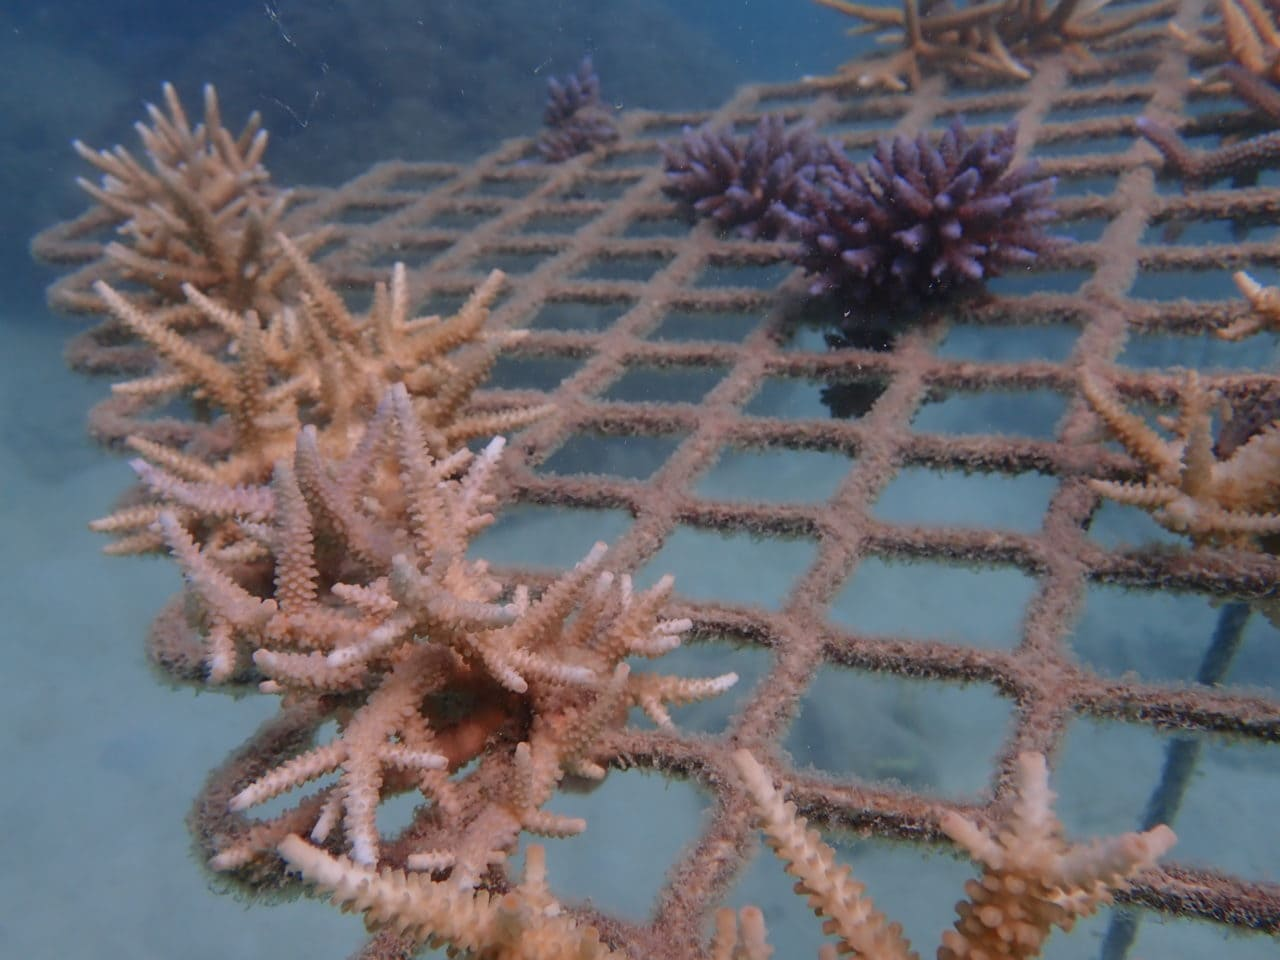 Underwater closeup photo of a coral frame on 16 Apr 20